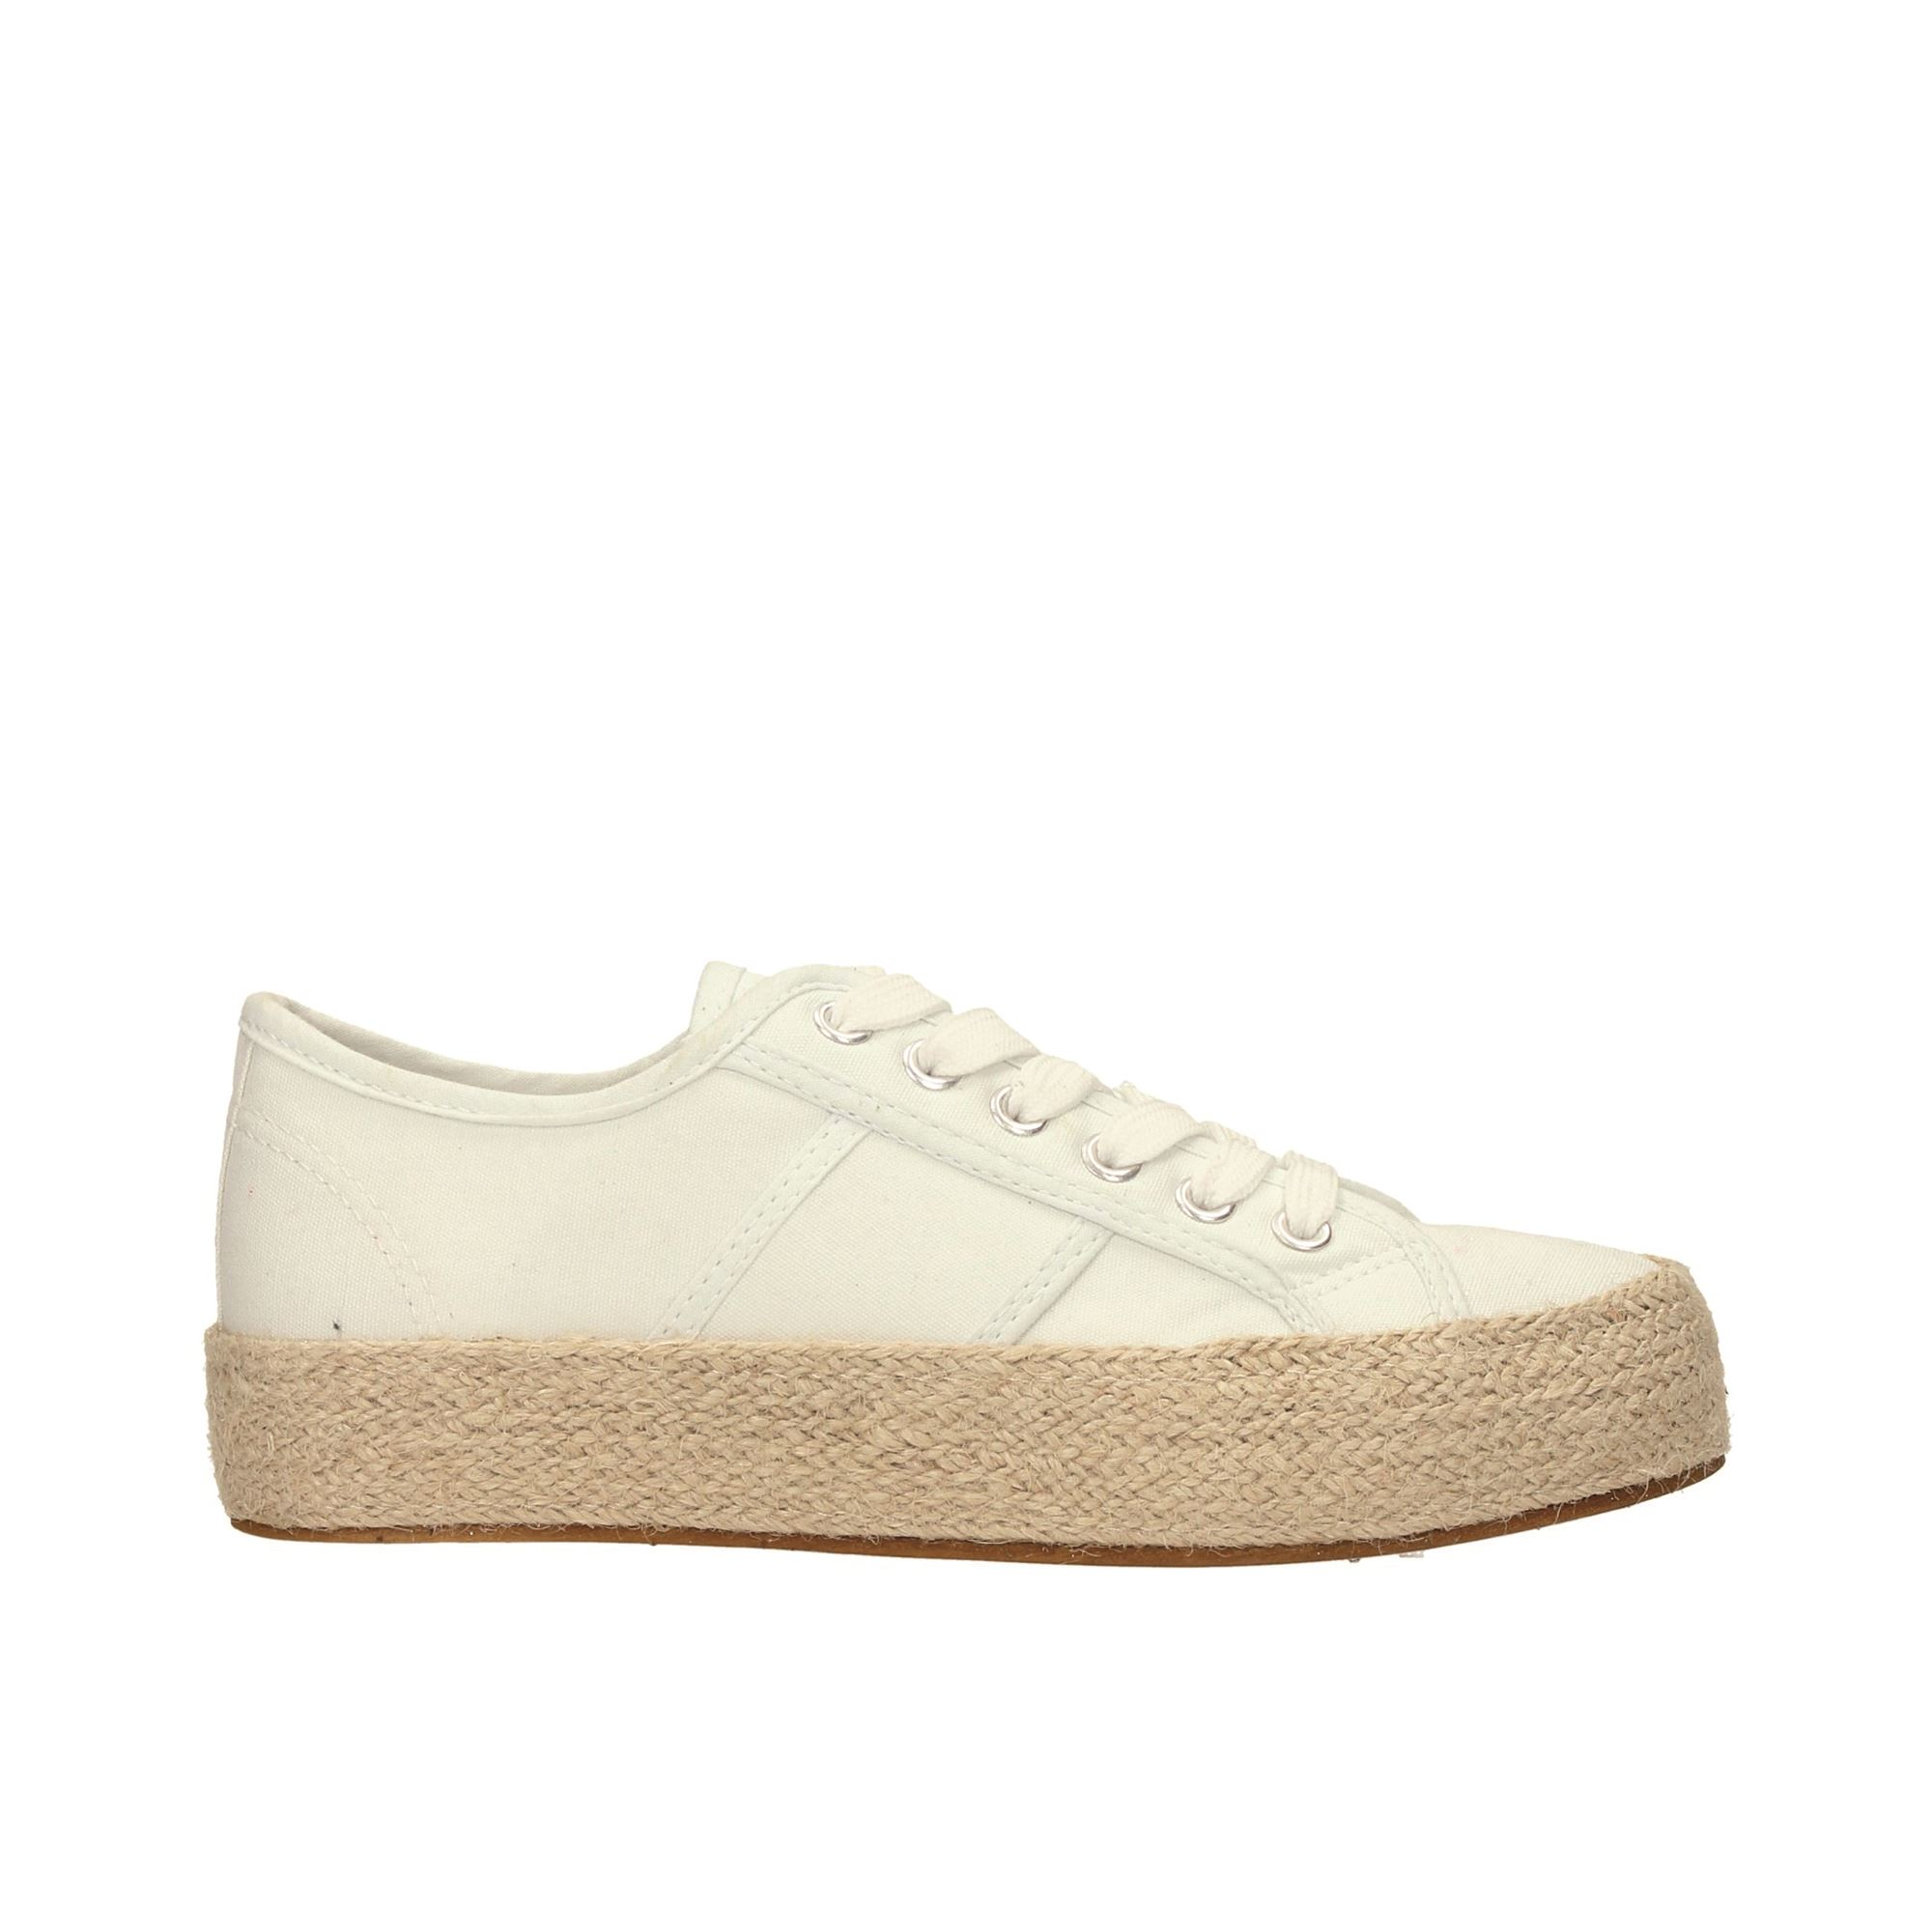 Tata Italia Shoes Woman Sneakers White TA9A401-22